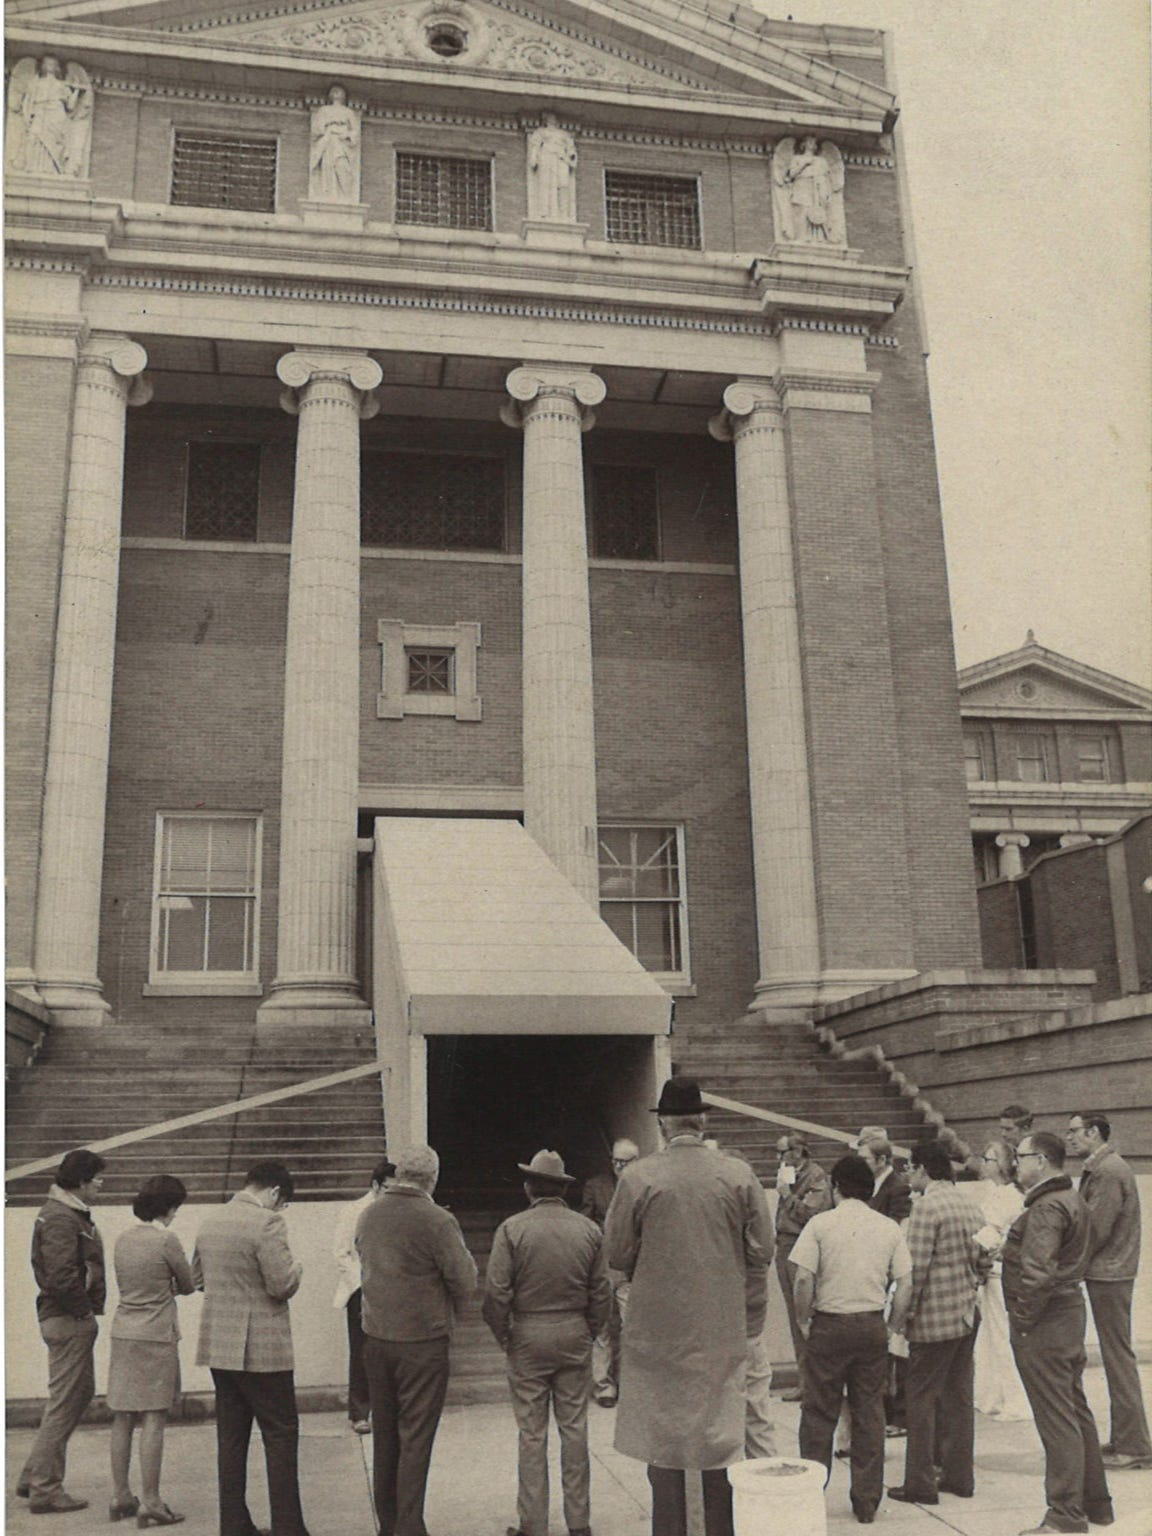 In 1972, the county constructed a wooden walkway into the Nueces County Courthouse to protect people entering and exiting the building from falling masonry.